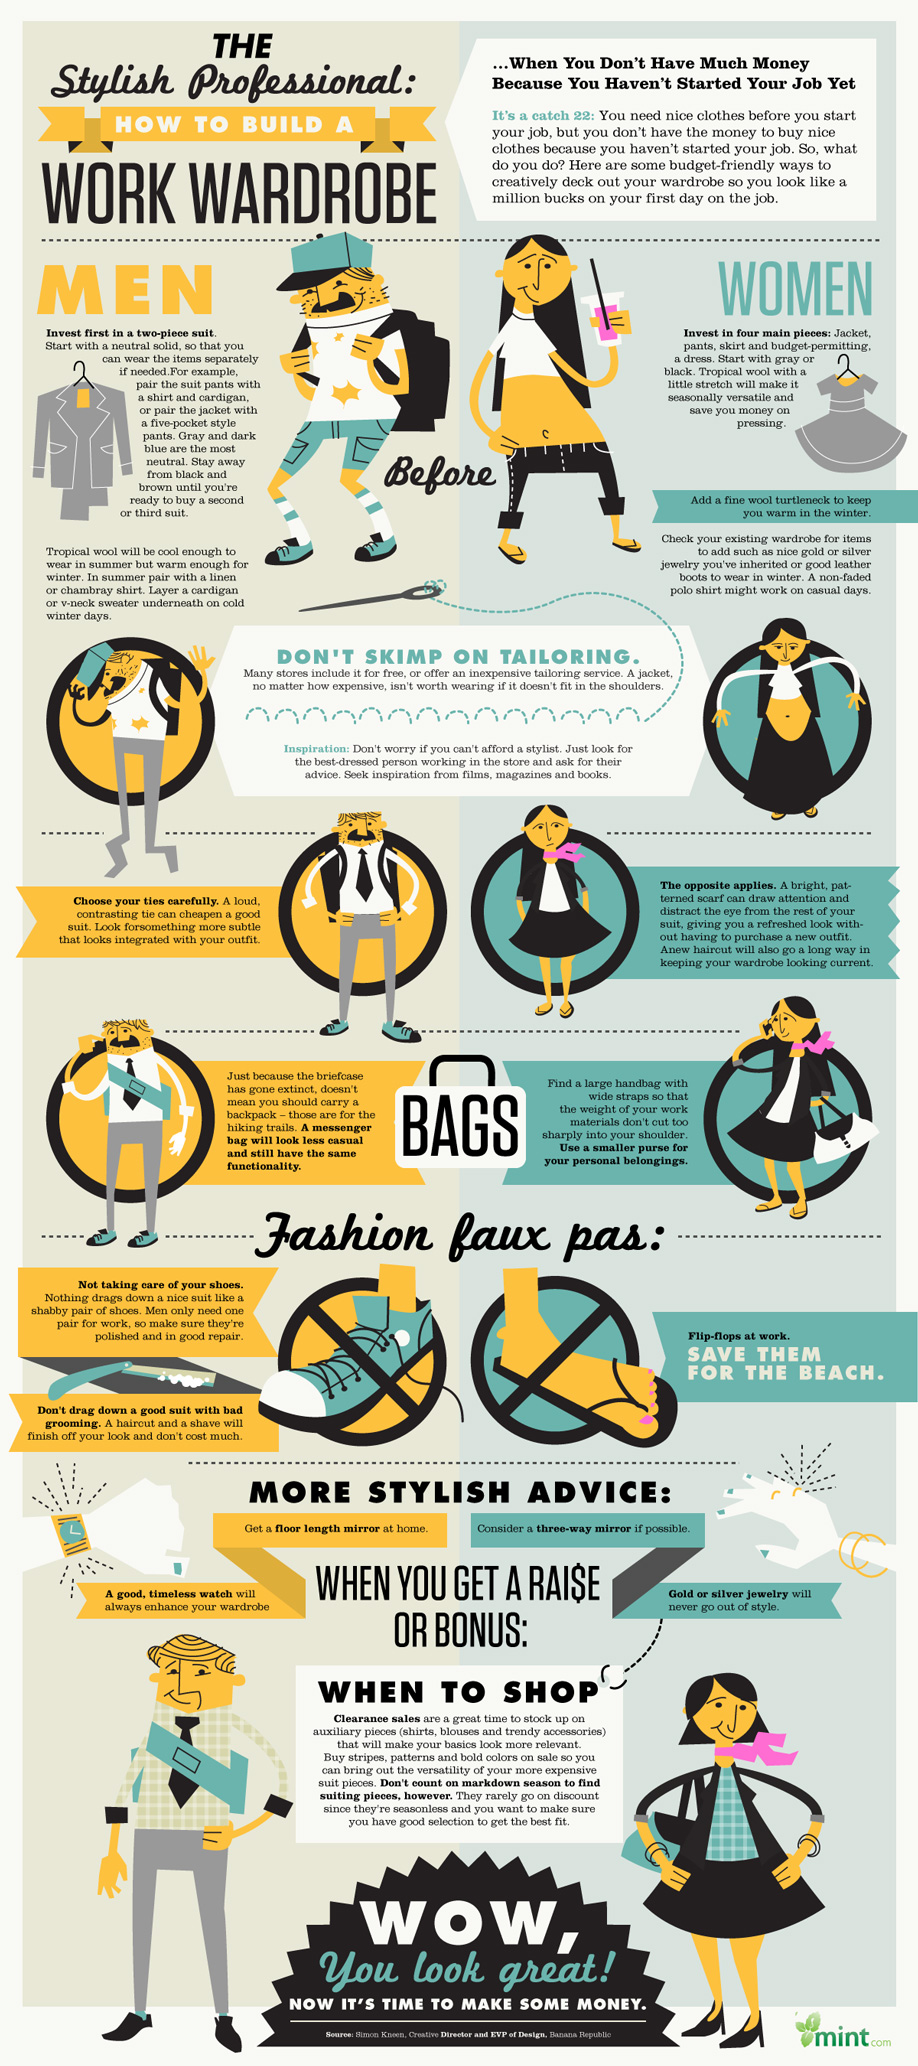 Infographic: How To Build A Work Wardrobe From Scratch